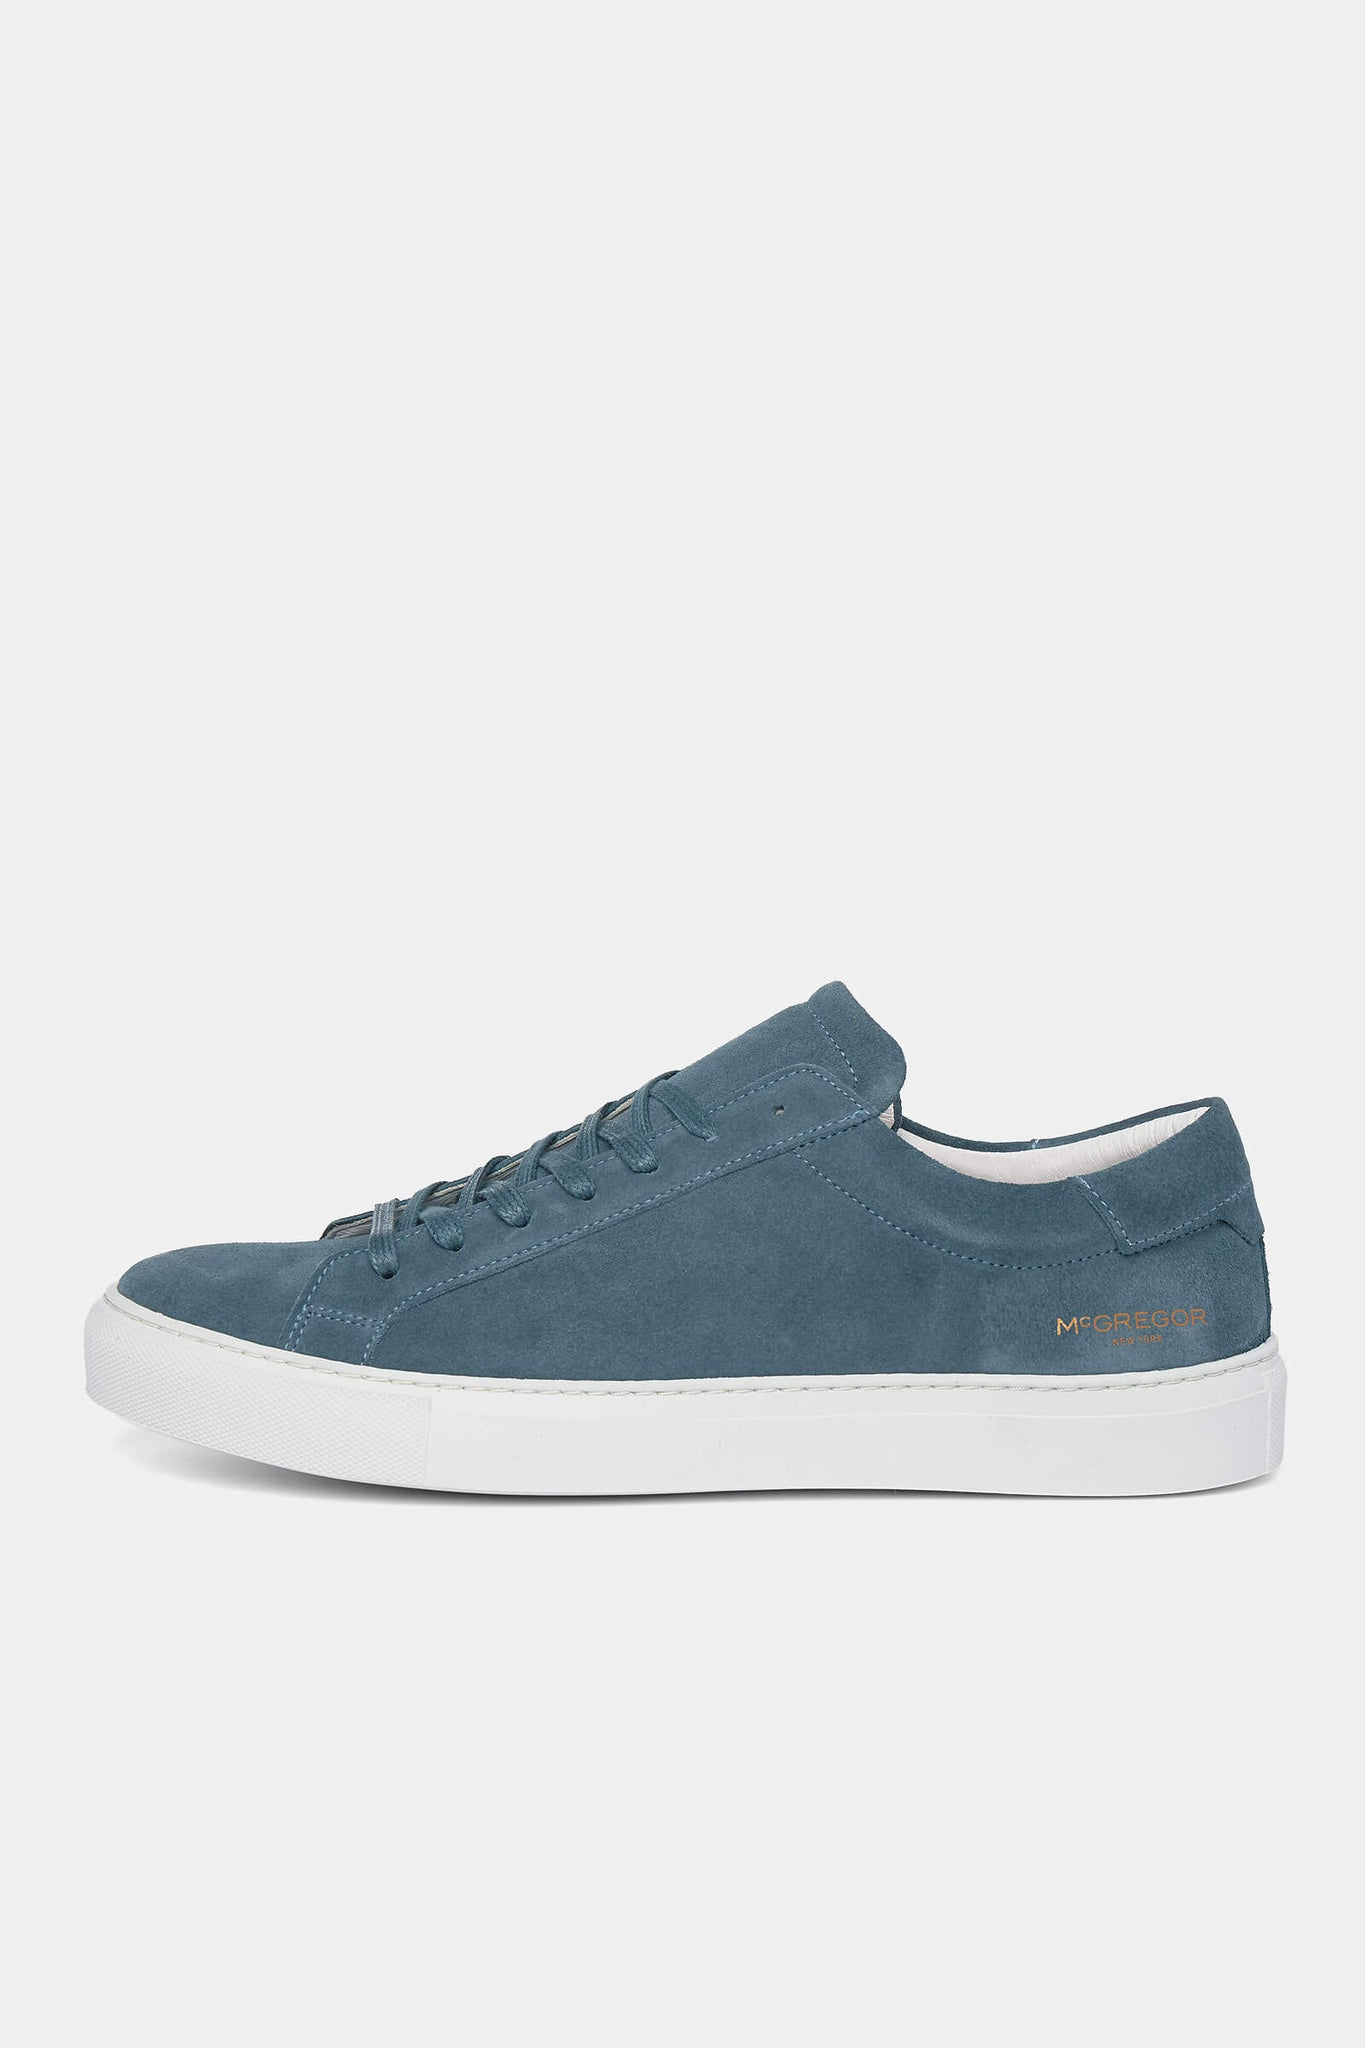 The McG Blue Suede Sneakers